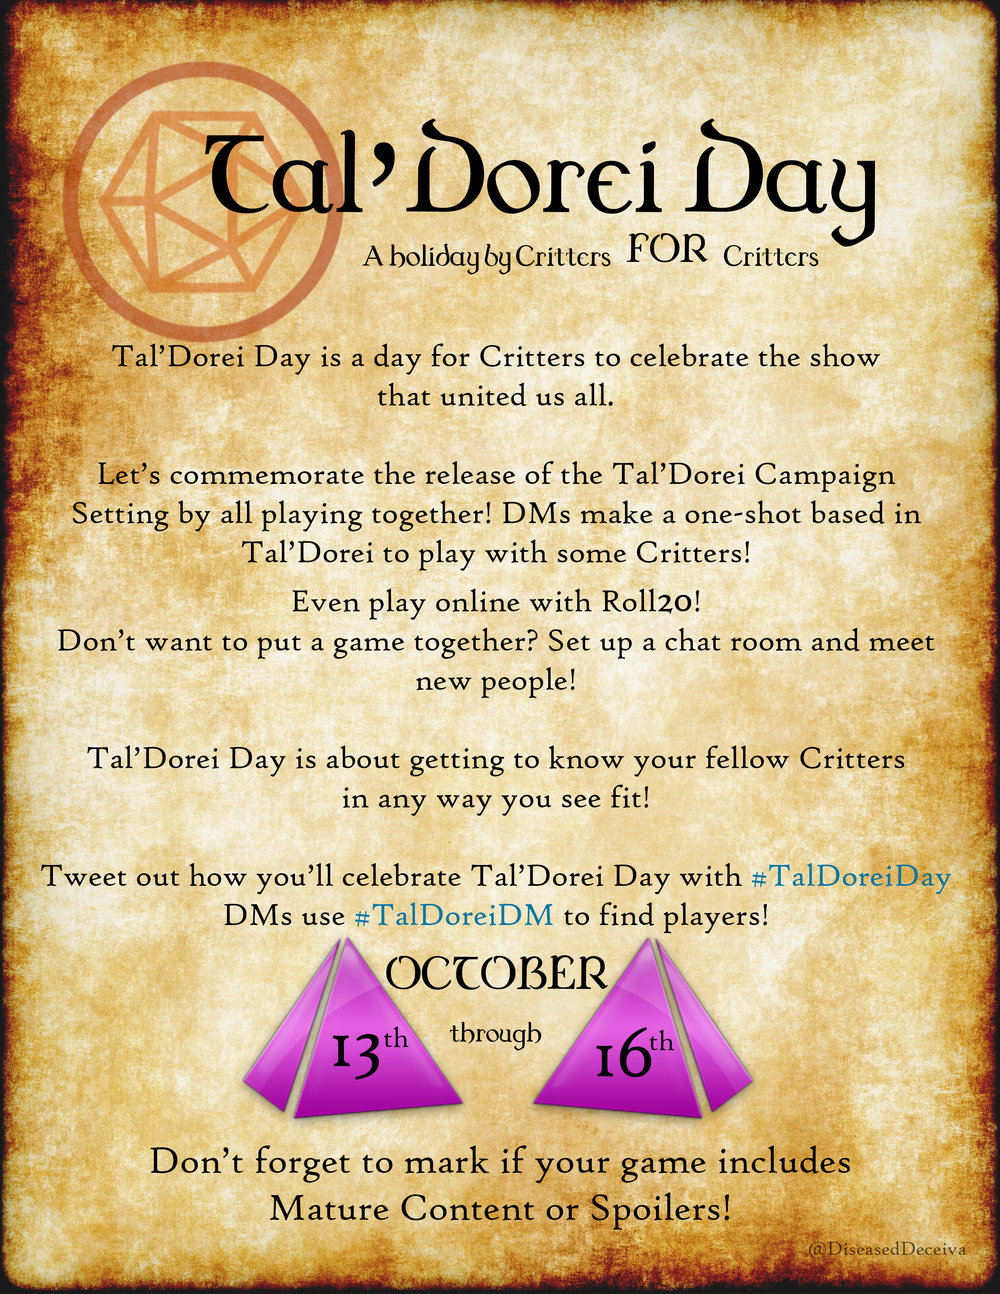 Tal'Dorei Day 2017 announcement poster.